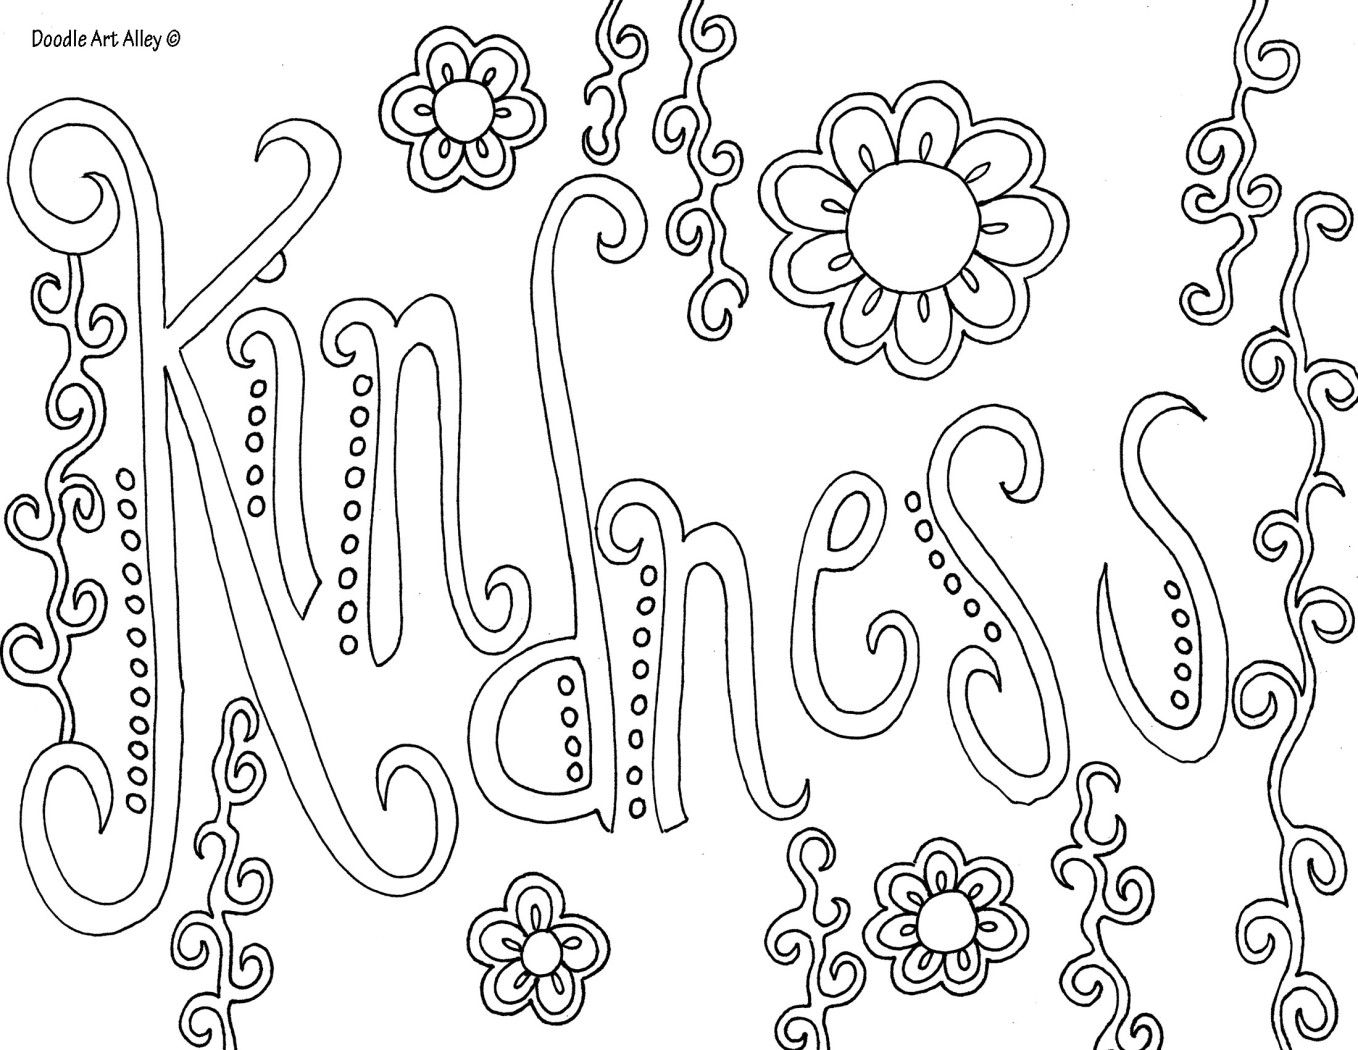 Kindness Jpg Bible Coloring Pages Quote Coloring Pages Coloring Pages